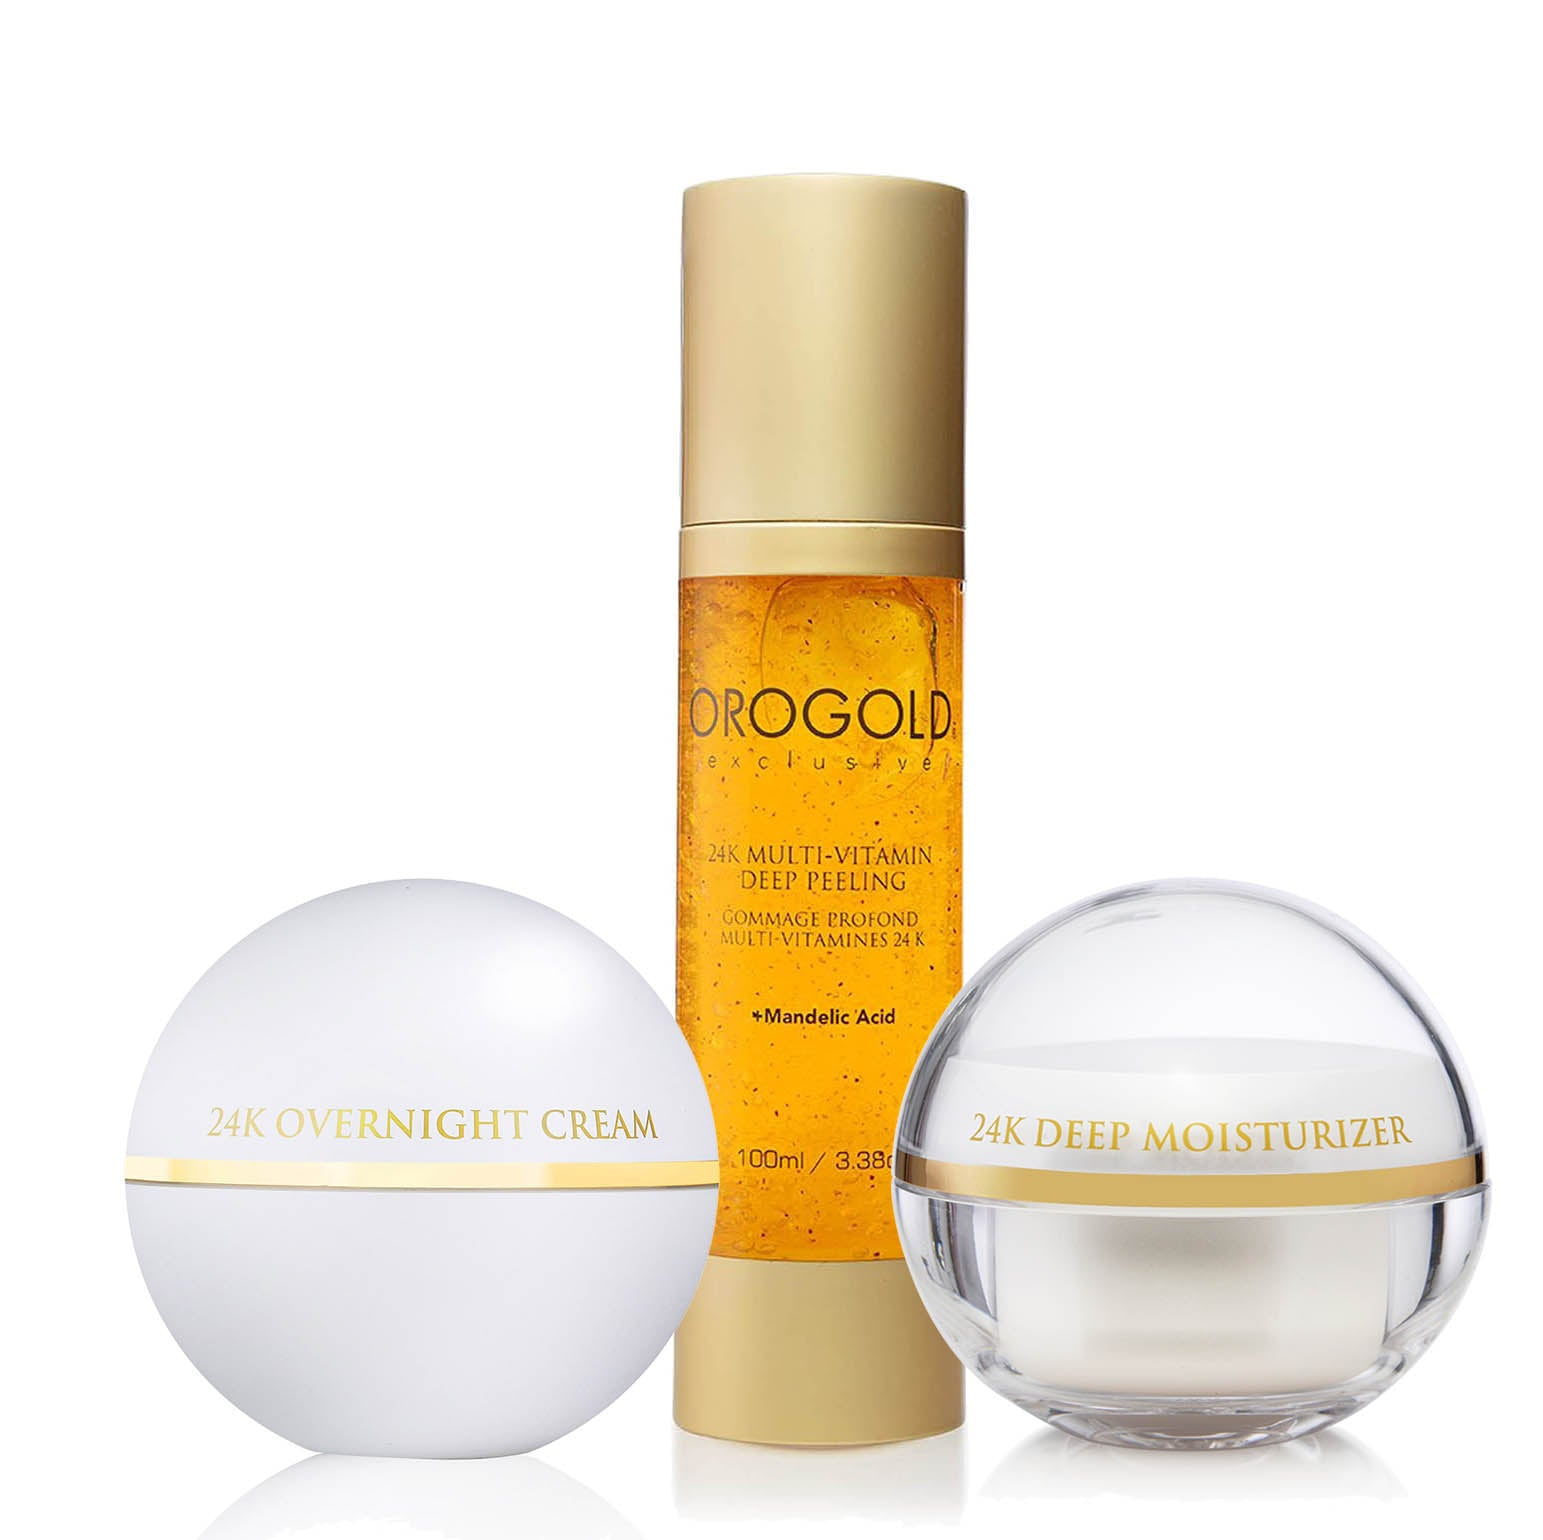 OROGOLD 24K Luxury Skincare Gift Set